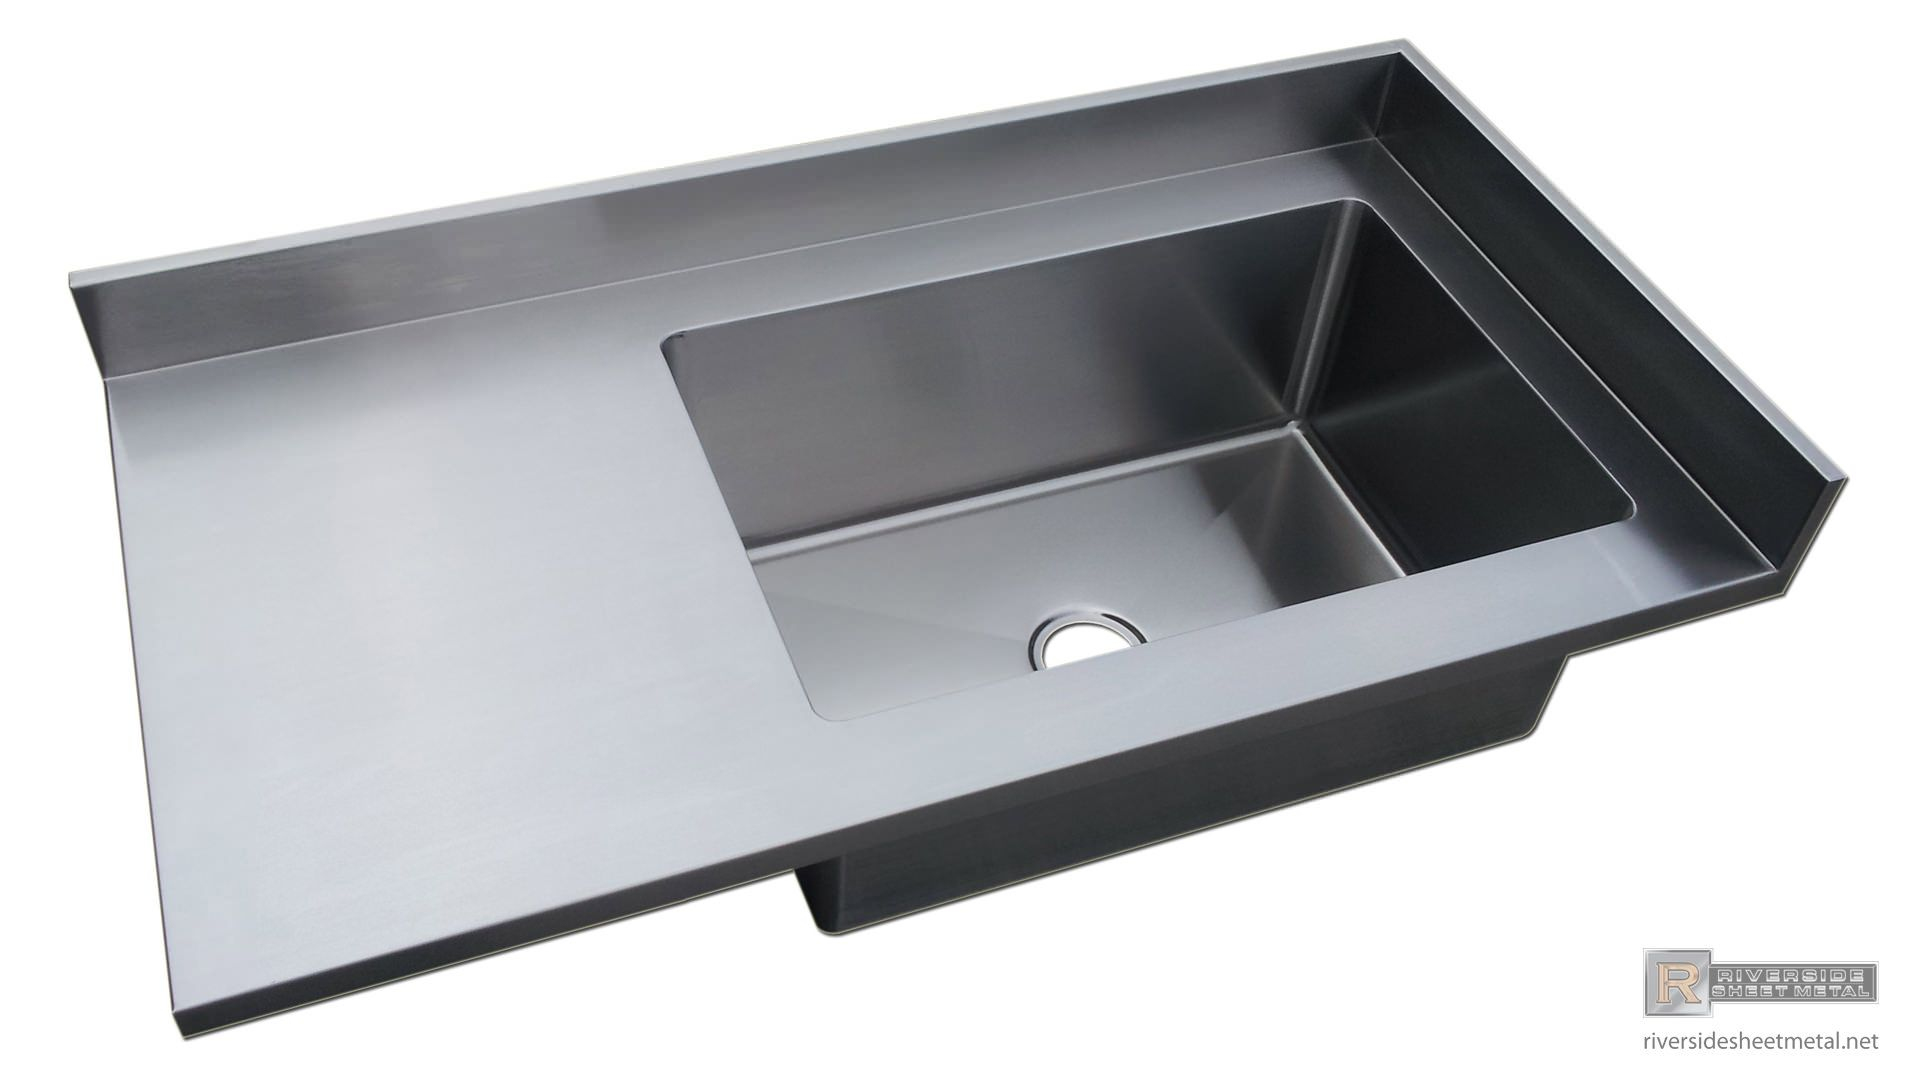 Stainless Steel Number 4 Finish Counter Top With